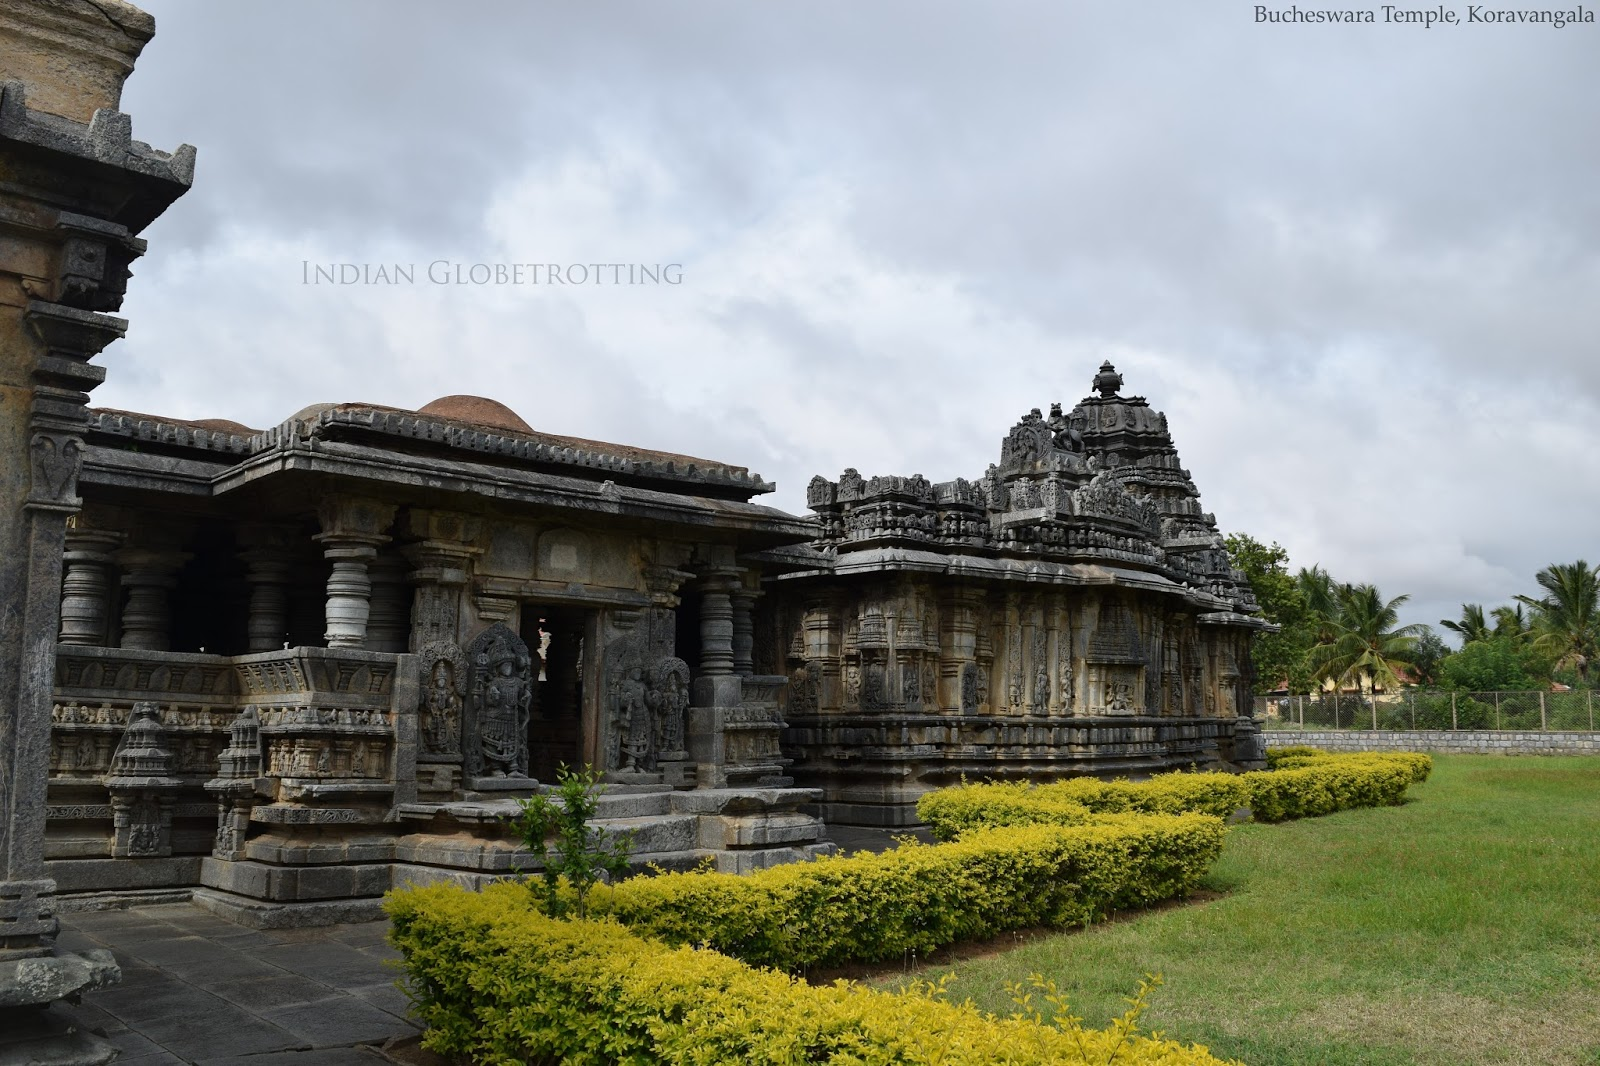 Side view of Bucheswara temple in koravagala in karnataka